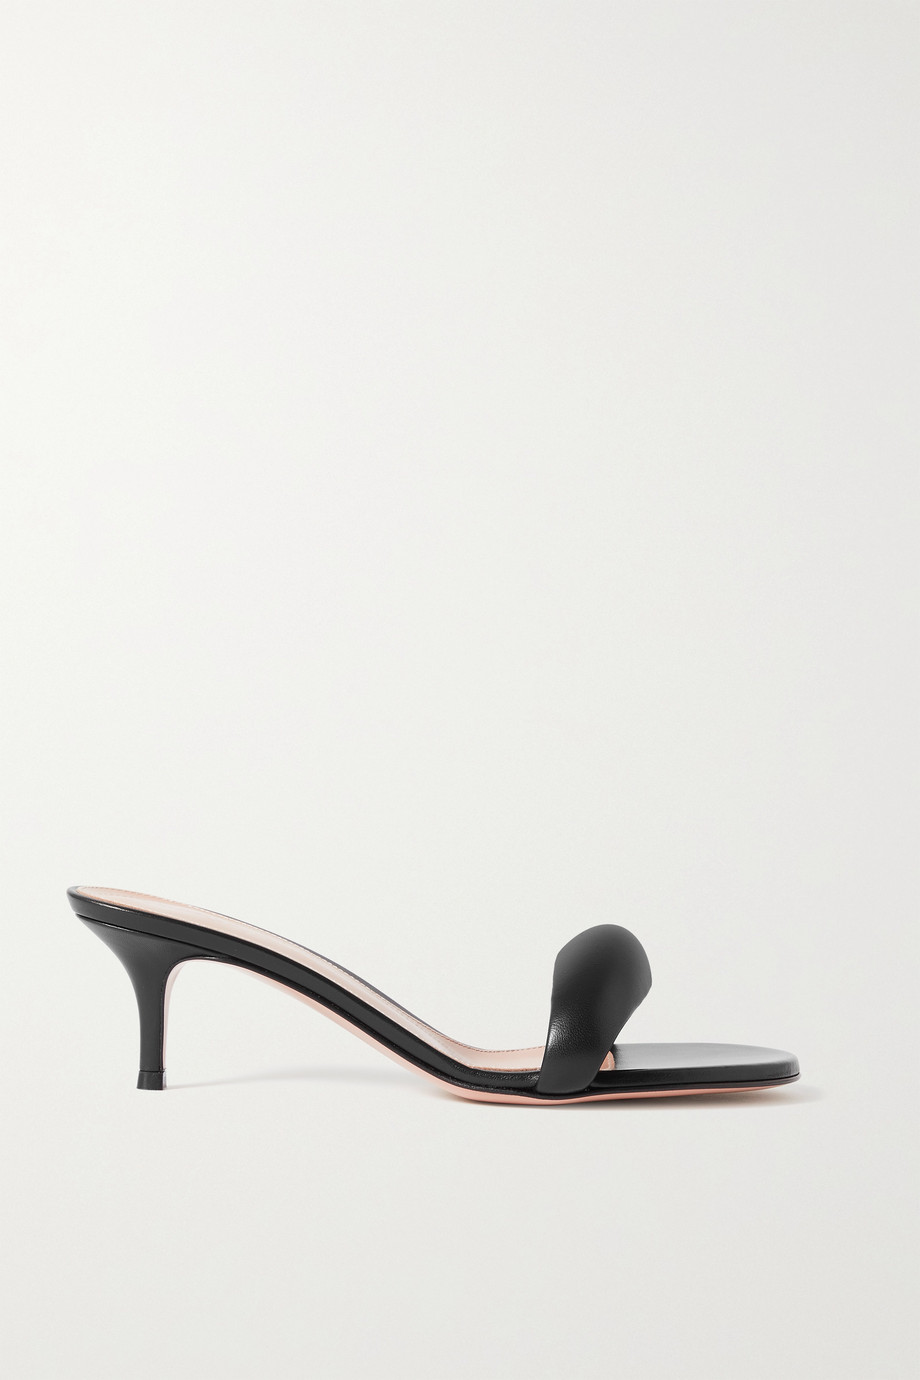 GIANVITO ROSSI 55 leather mules